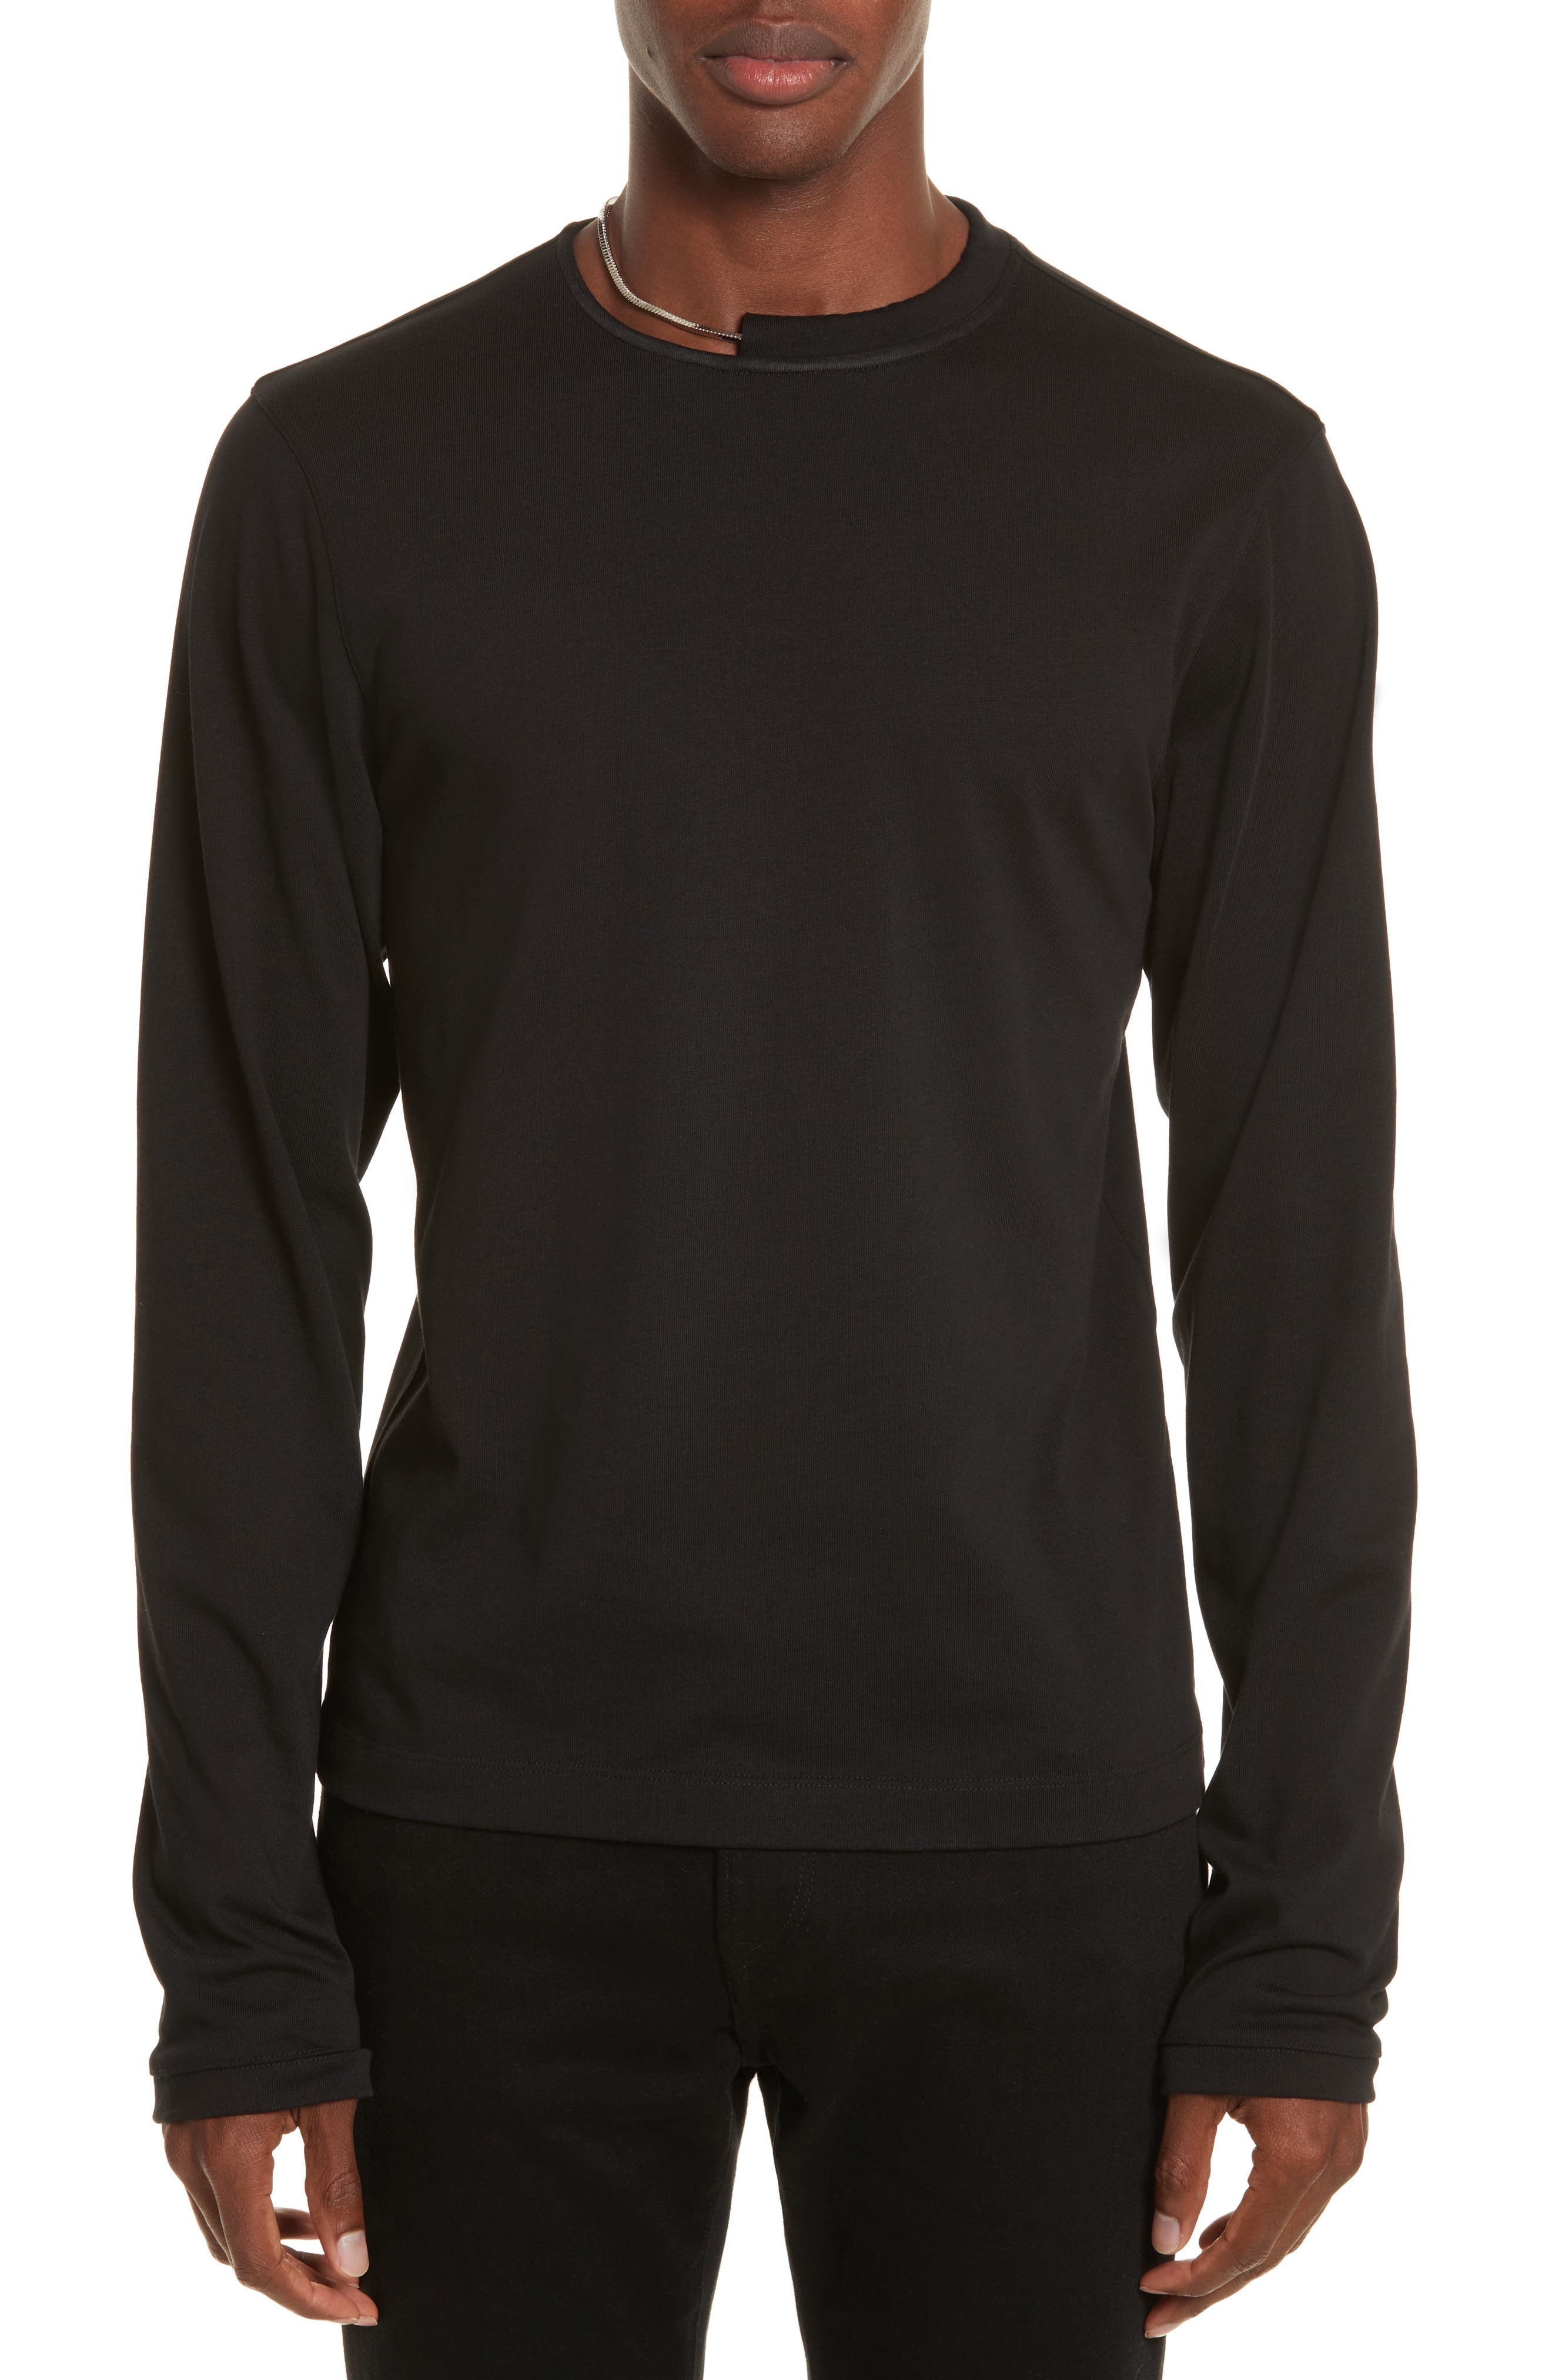 Alternate Image 1 Selected - Helmut Lang Necklace Crewneck T-Shirt